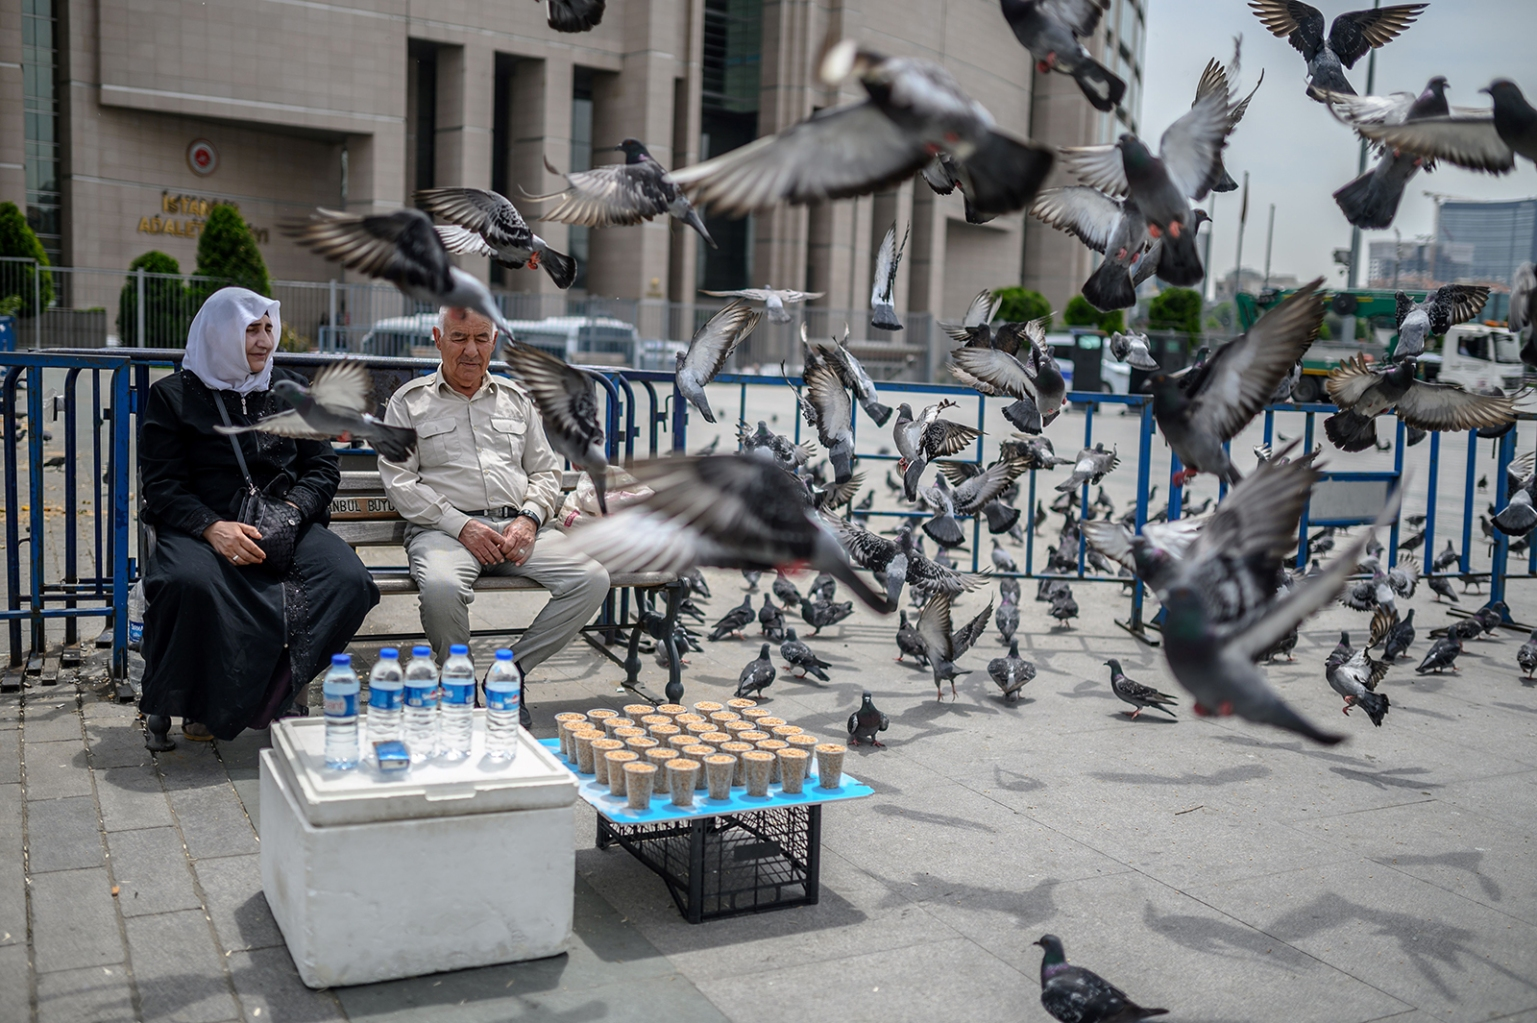 A couple sells food for feeding pigeons in front of the Caglayan courthouse in Istanbul on May 15. BULENT KILIC/AFP/Getty Images